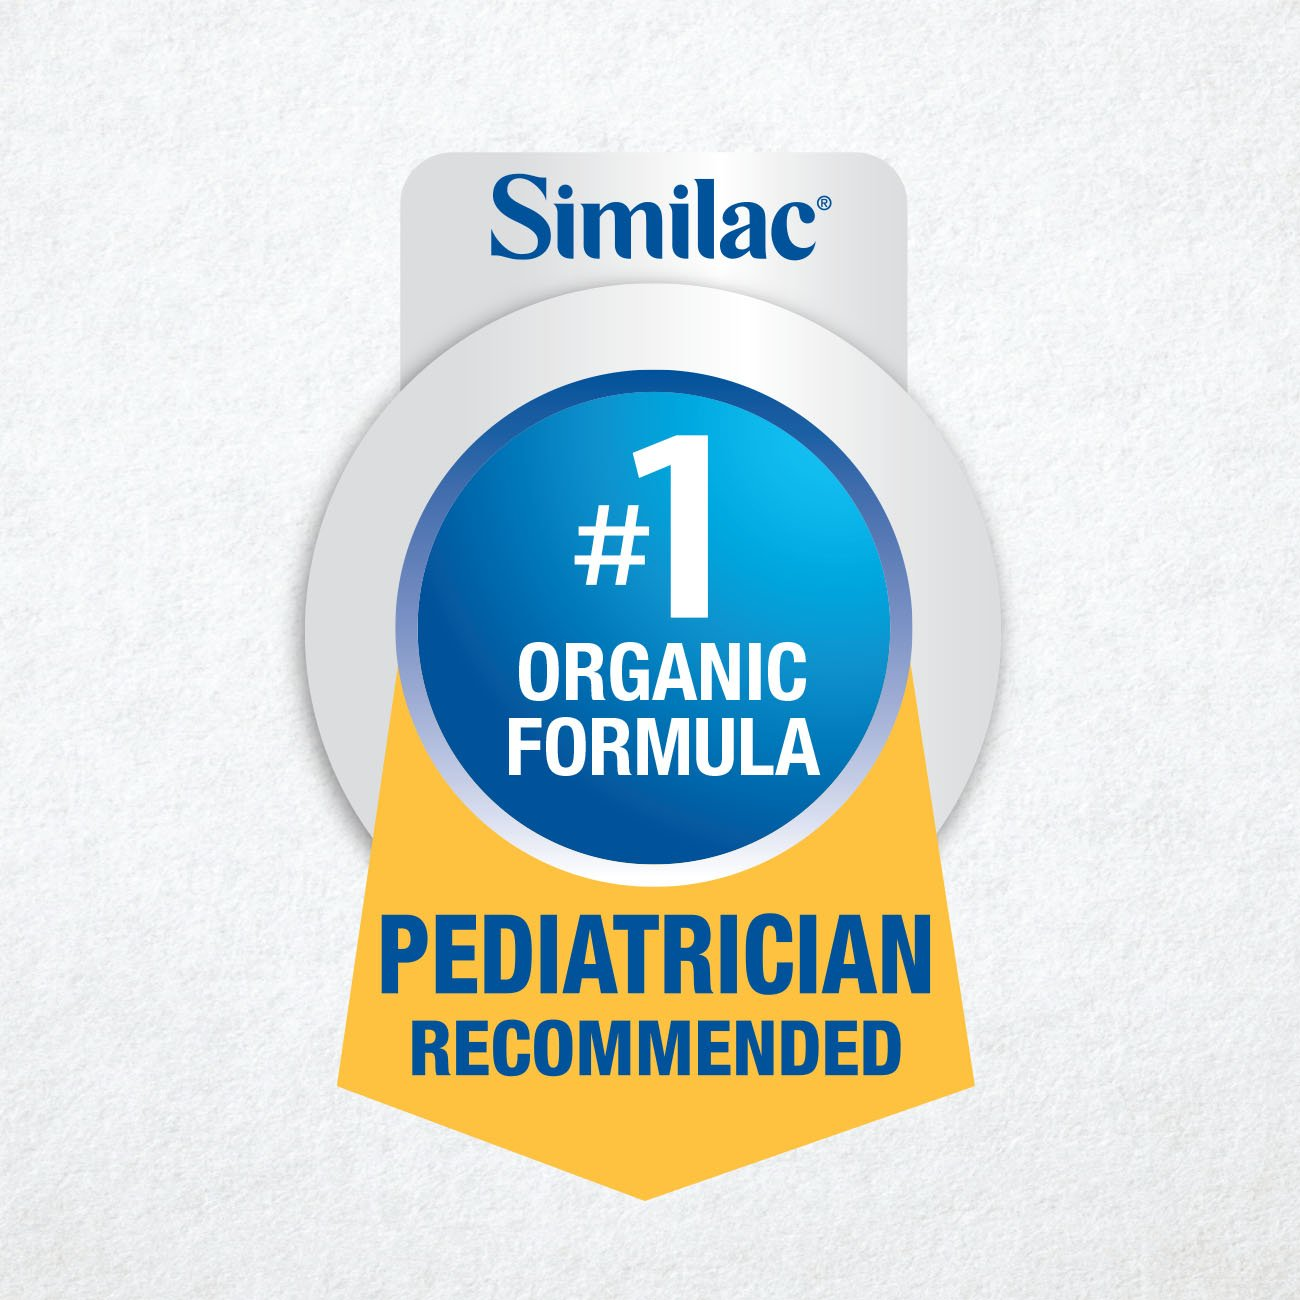 Similac Organic Non-GMO Infant Formula, Powder, Baby Formula, 23.2 ounces, 6 Count, (1-Month Supply) by Similac (Image #5)